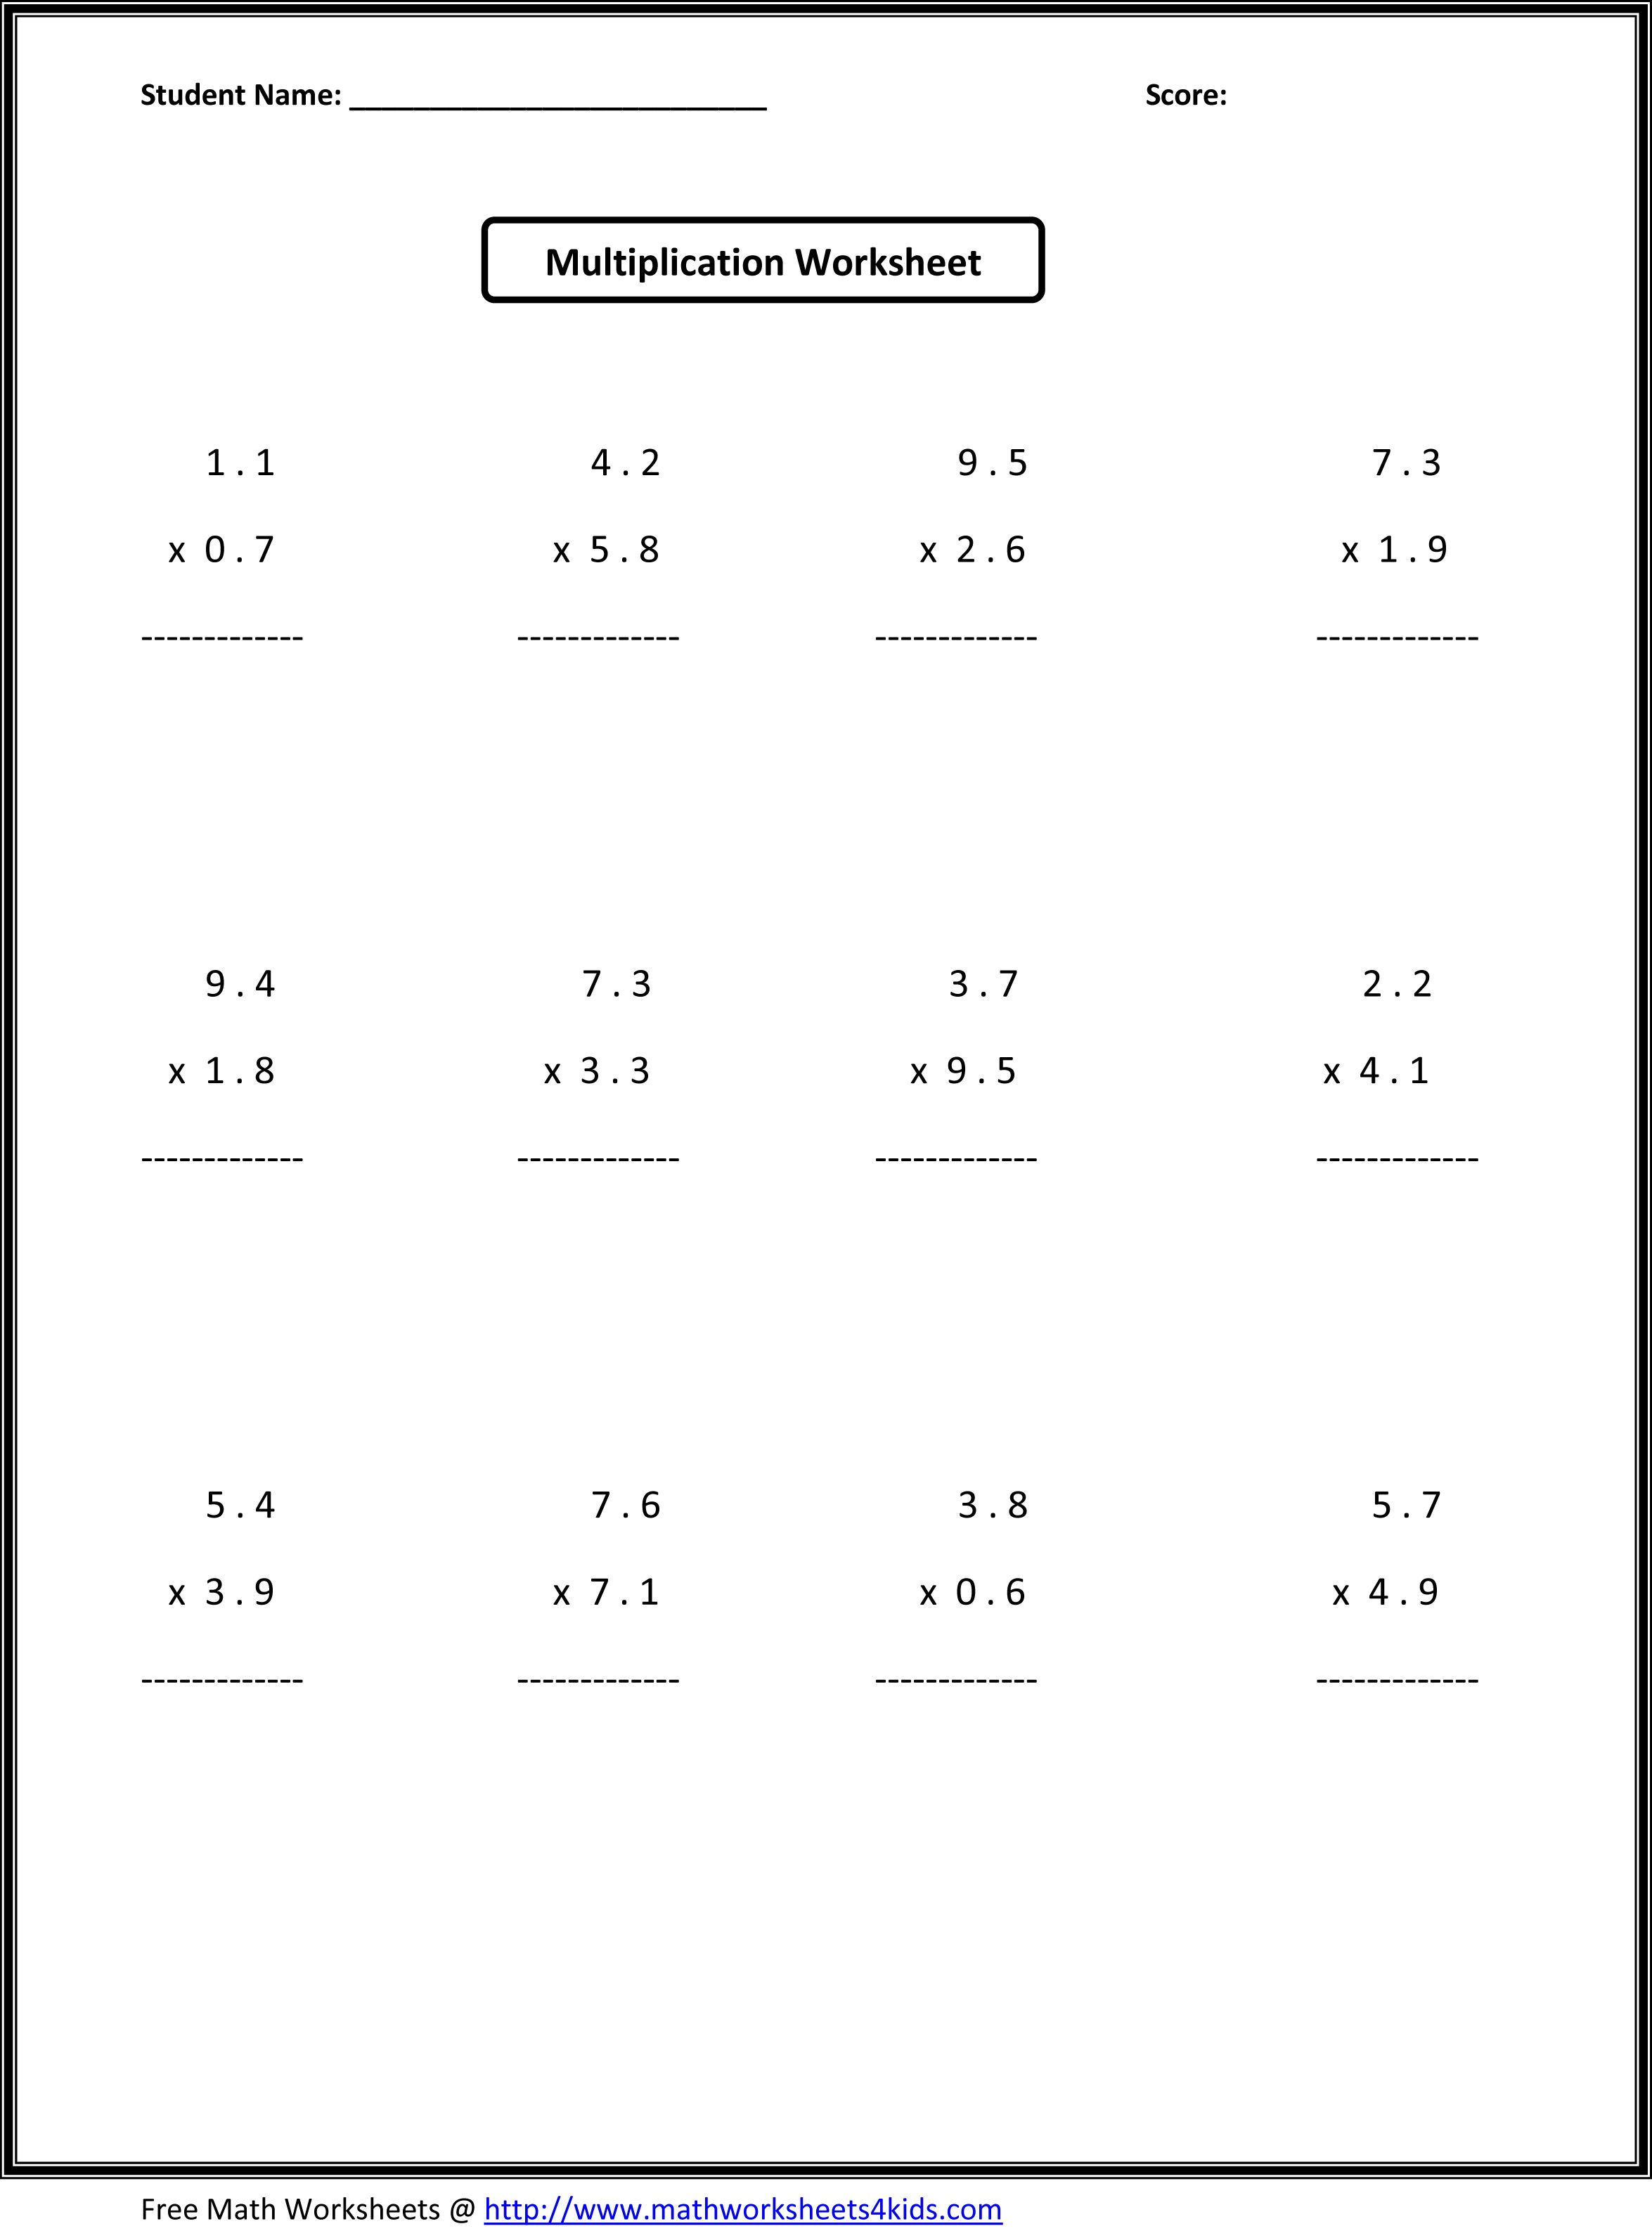 Worksheets Math Worksheet 6th Grade math decimals worksheets riddles 4th 5th 6th 7th grade sixth have ratio multiplying and dividing fractions algebraic expressions equations inequalities geom